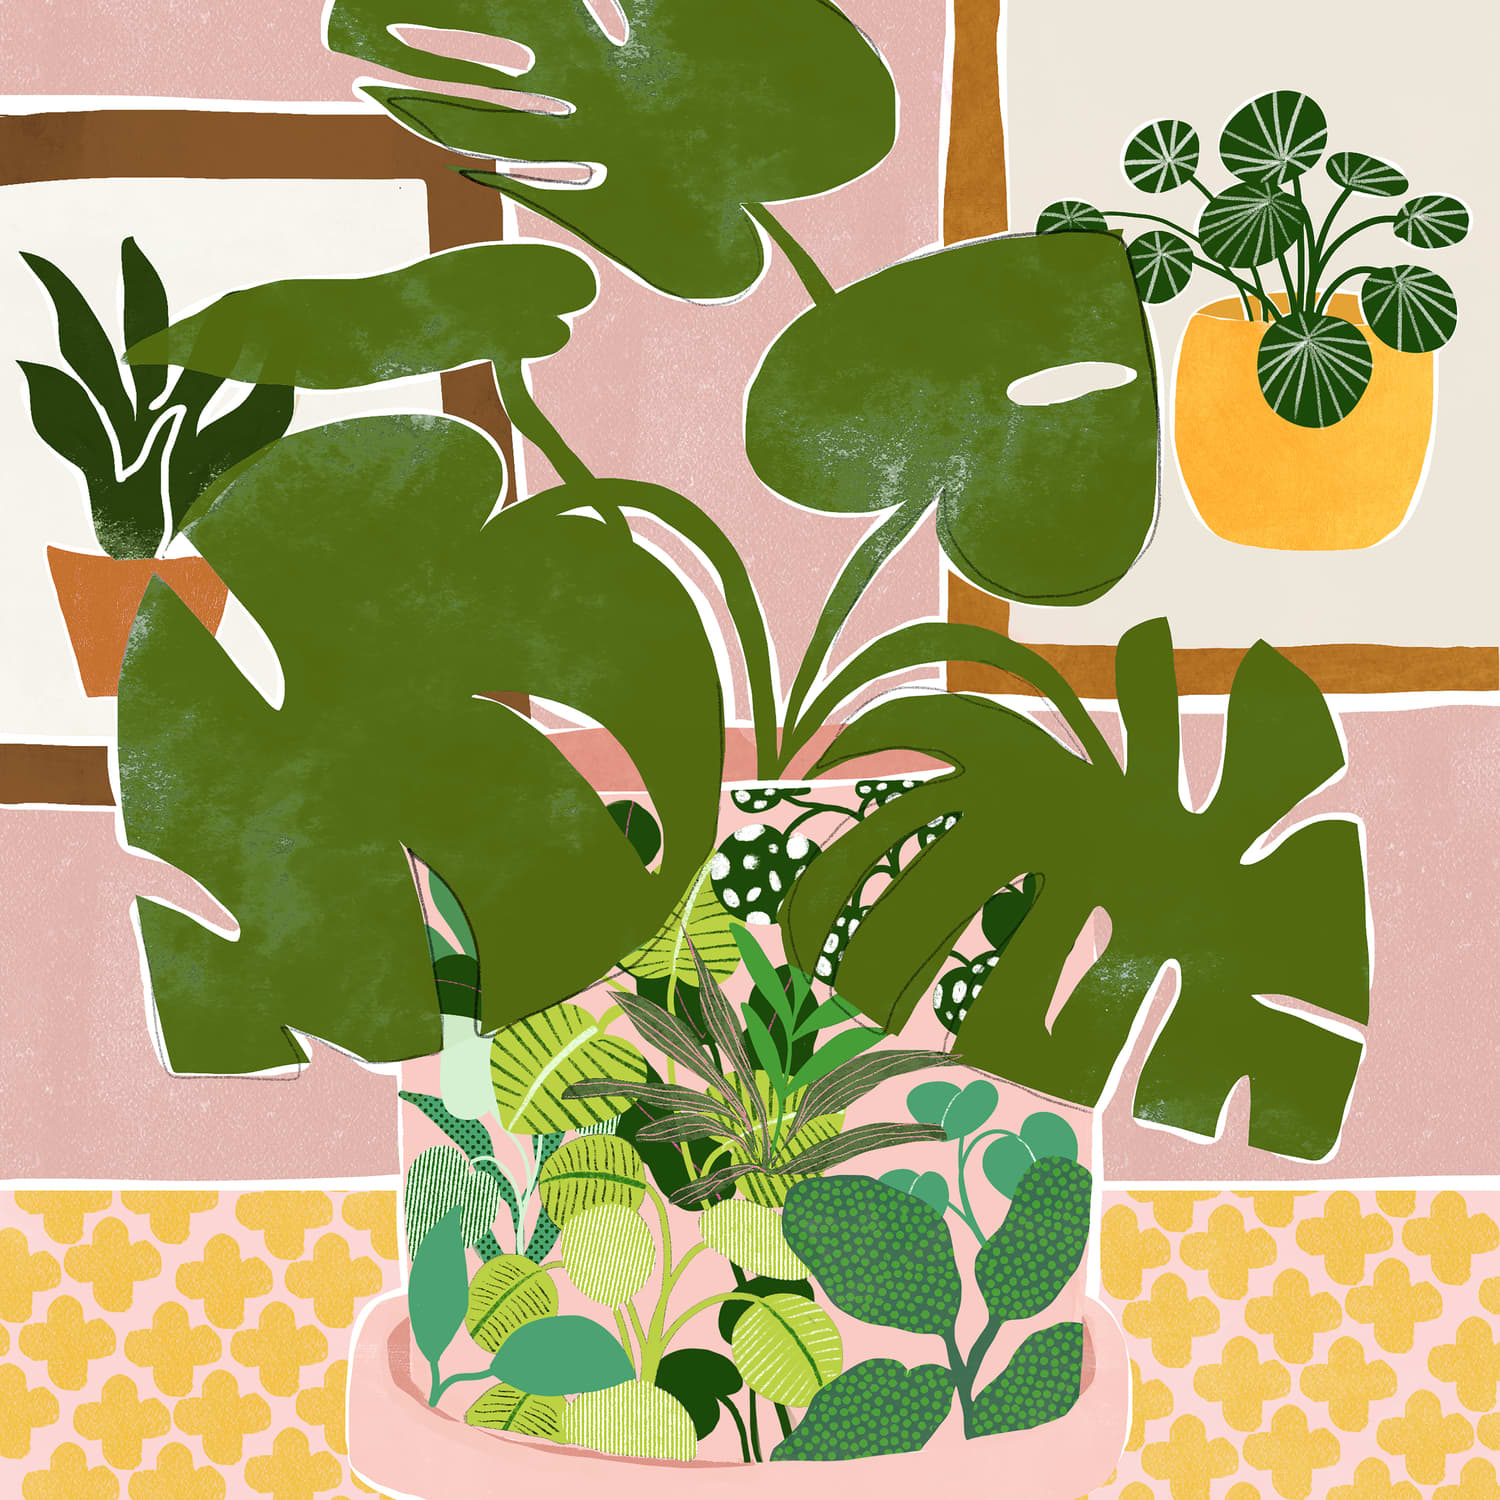 Society6 and The Sill Have Teamed Up for a Collection of Plant-Themed Artwork